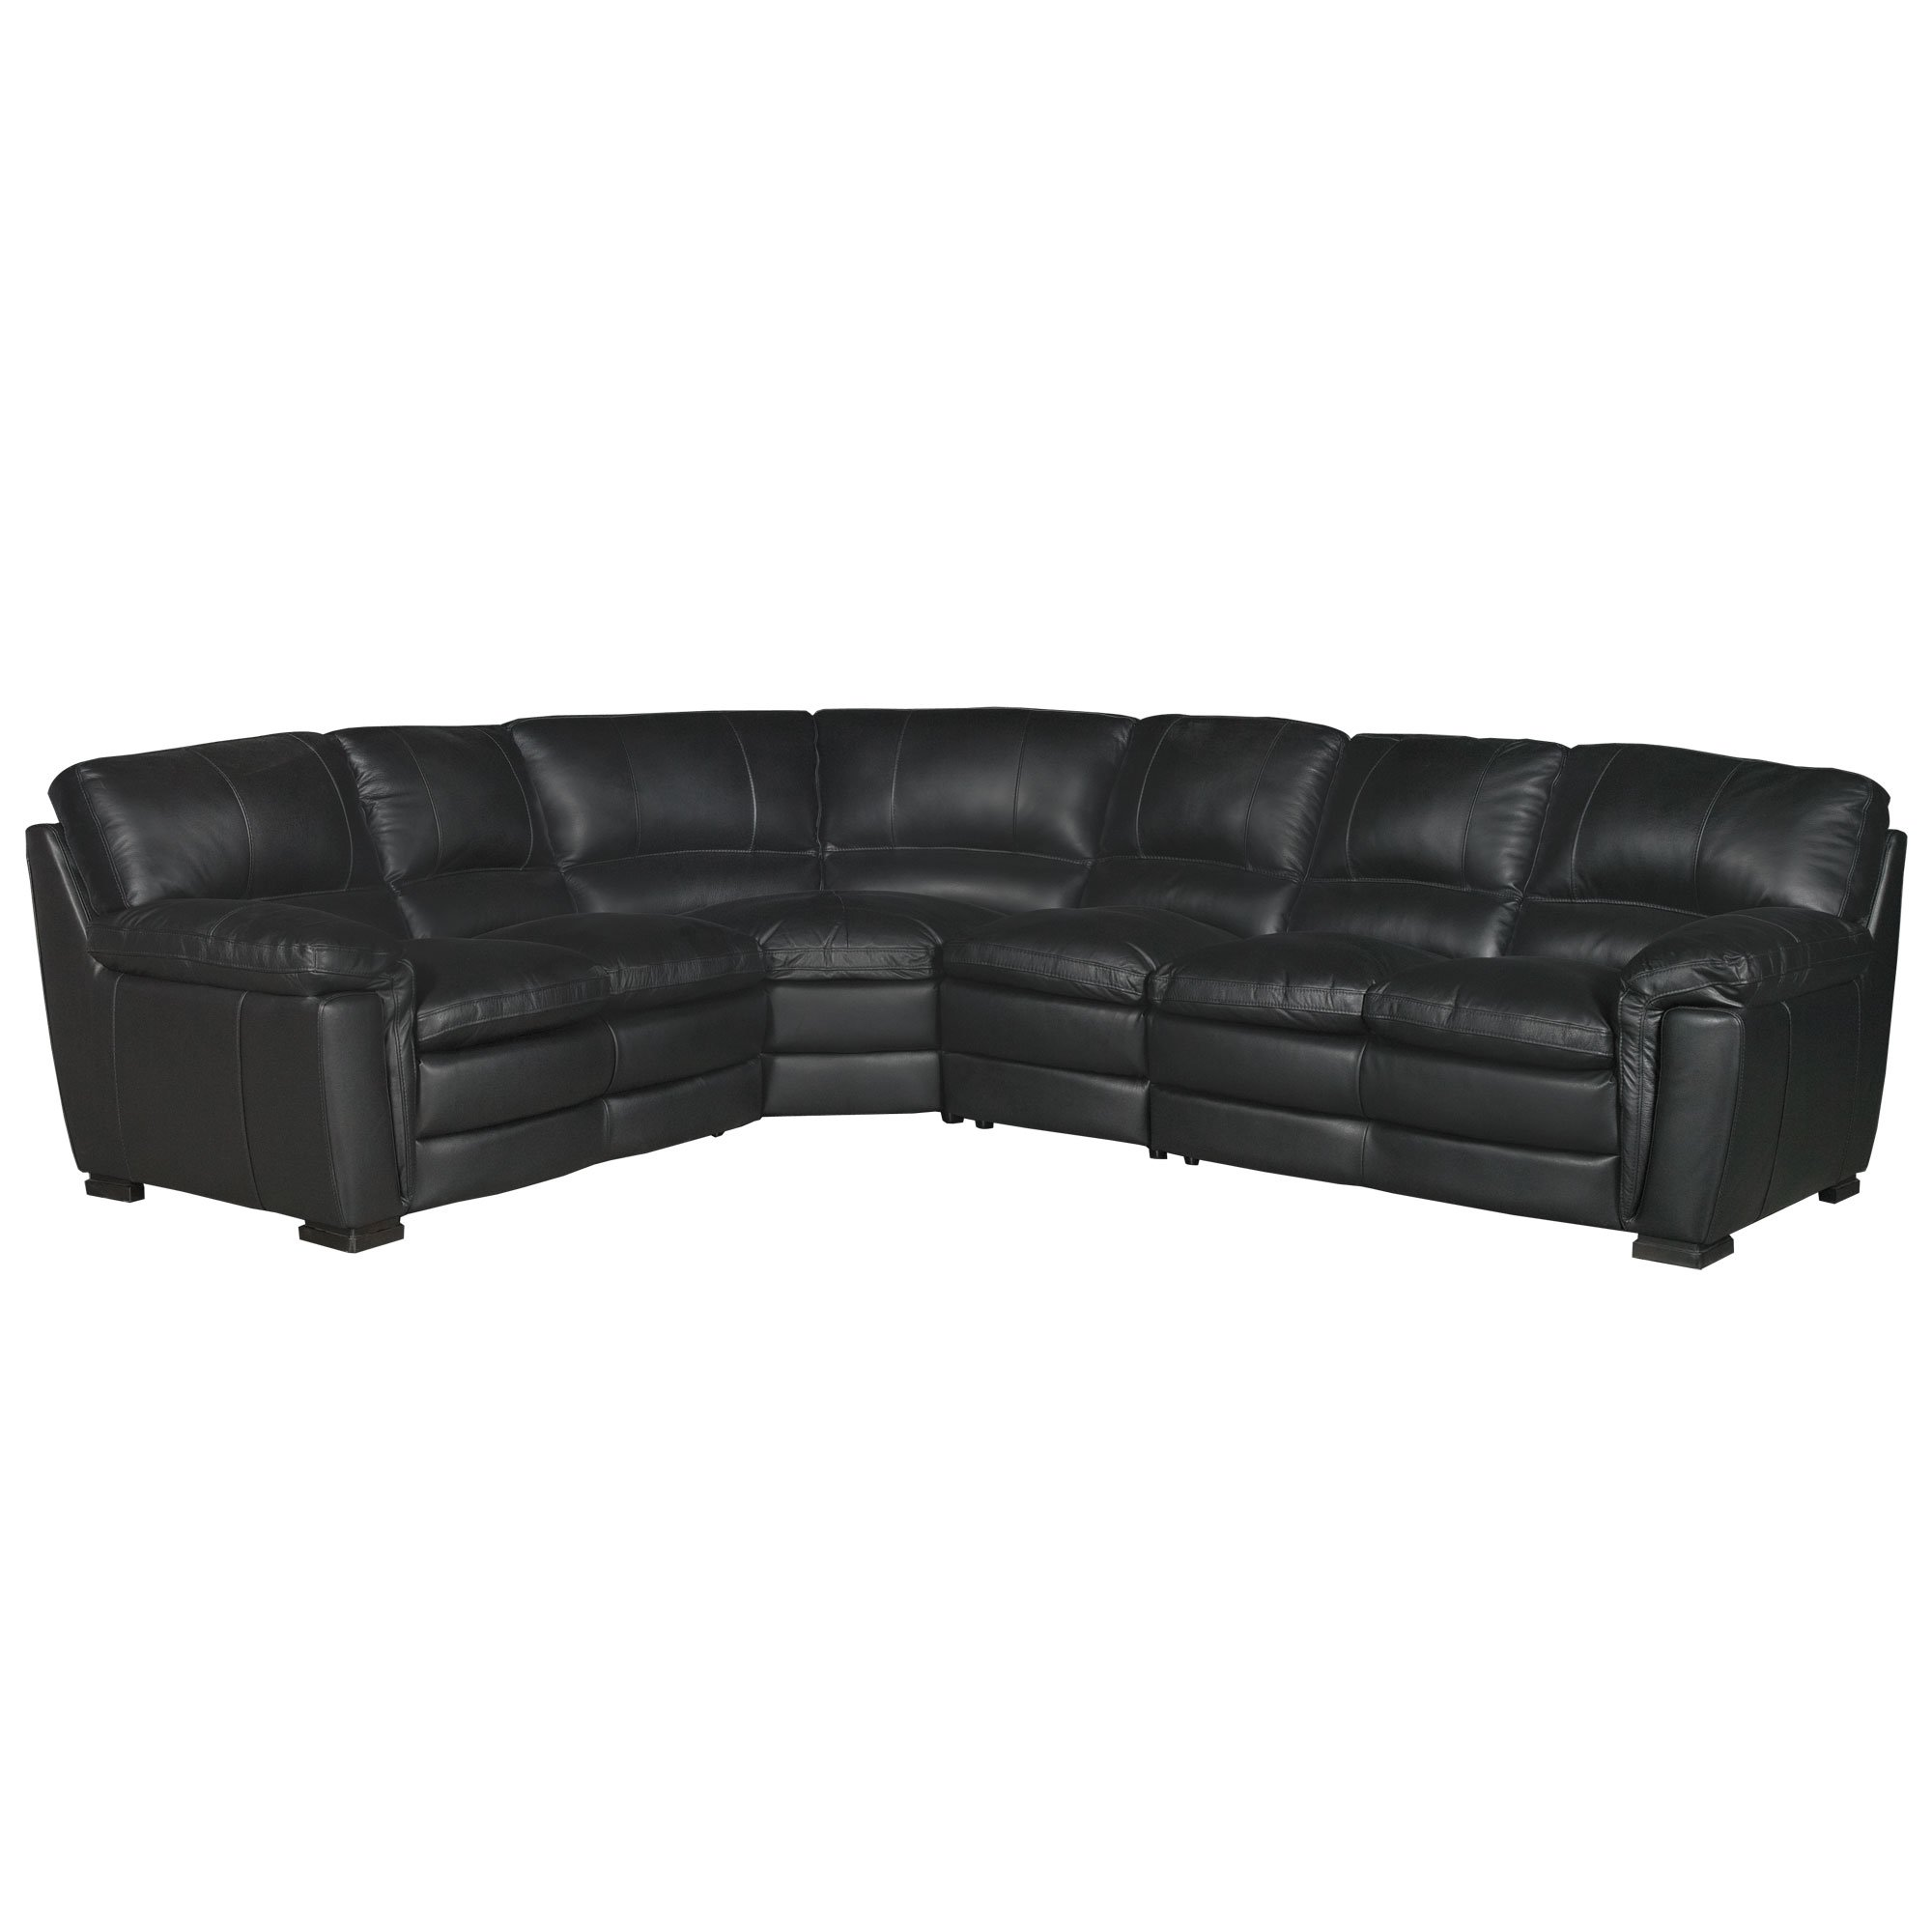 Contemporary 4 Piece Black Leather Sectional Sofa Tanner